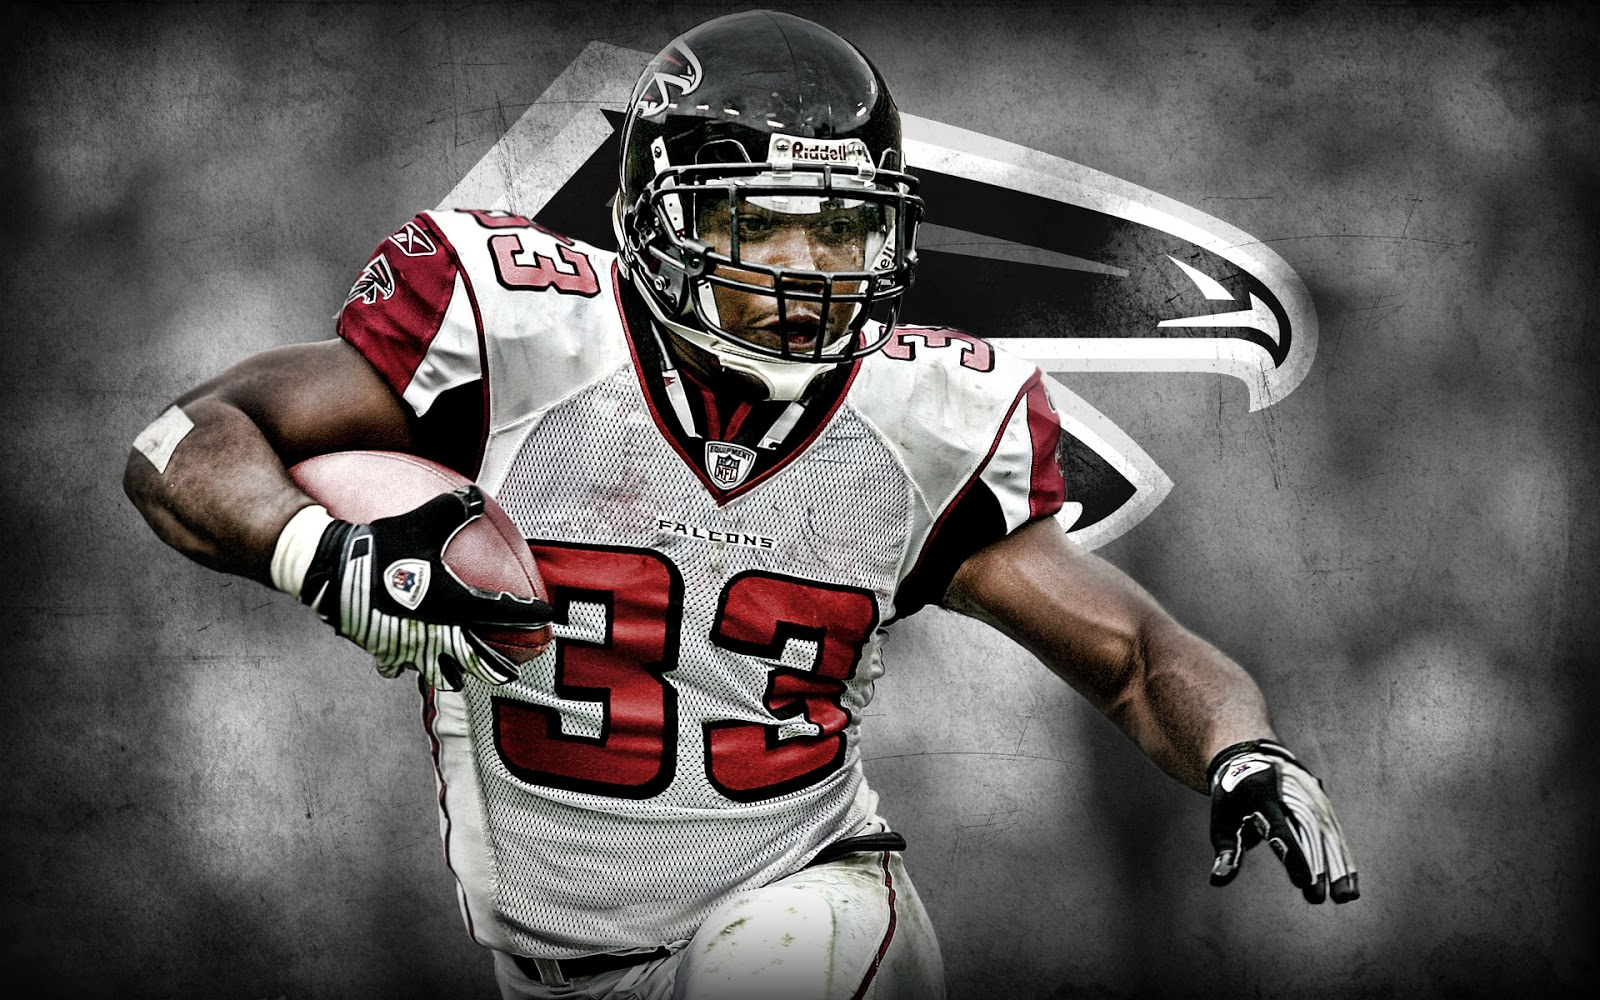 Falcons Wallpaper: Falcons Wallpapers